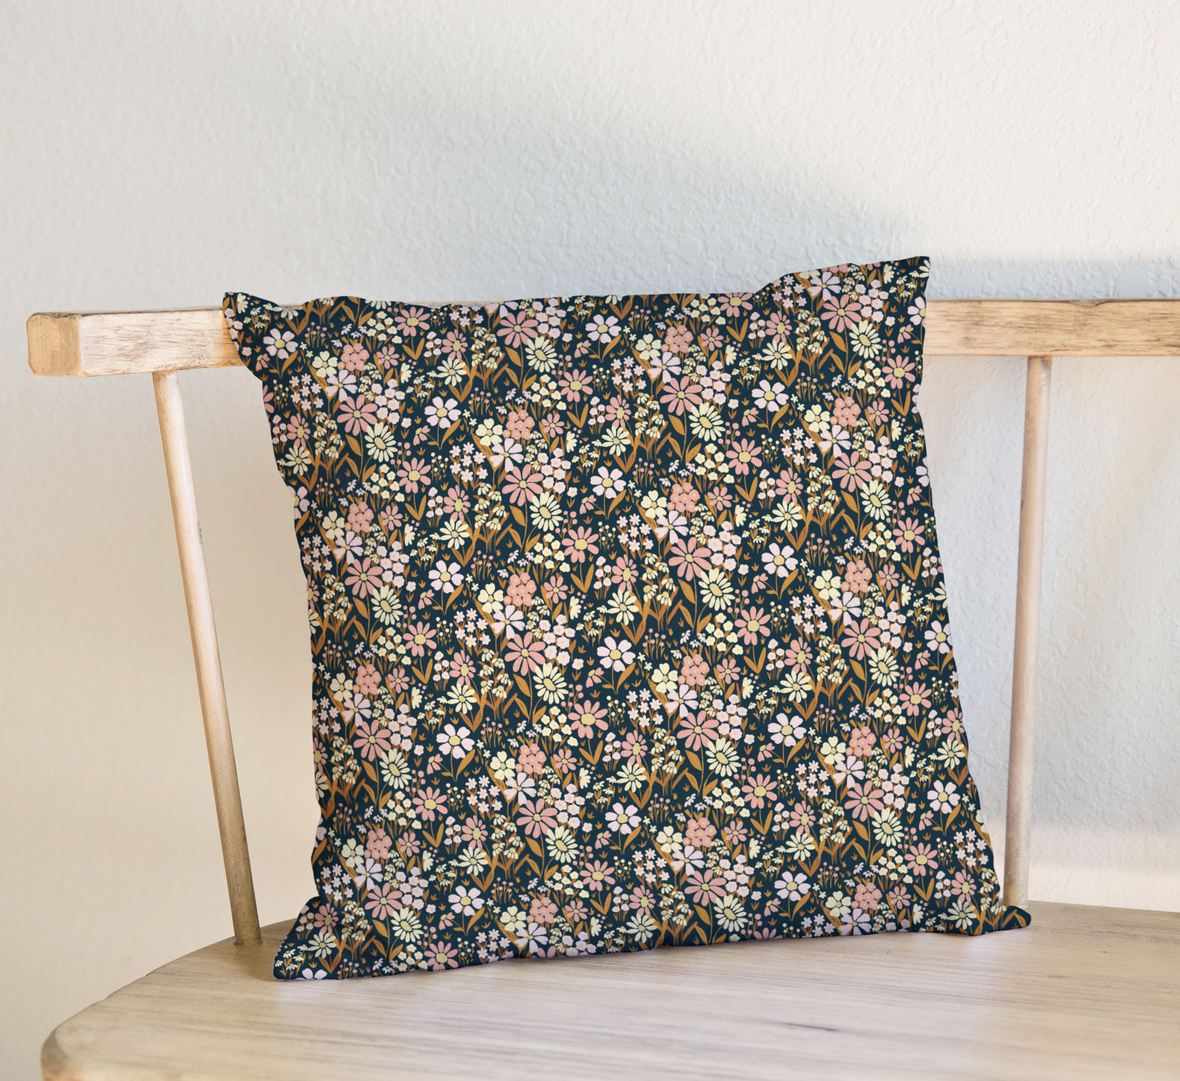 Pillow on Bench wf 2